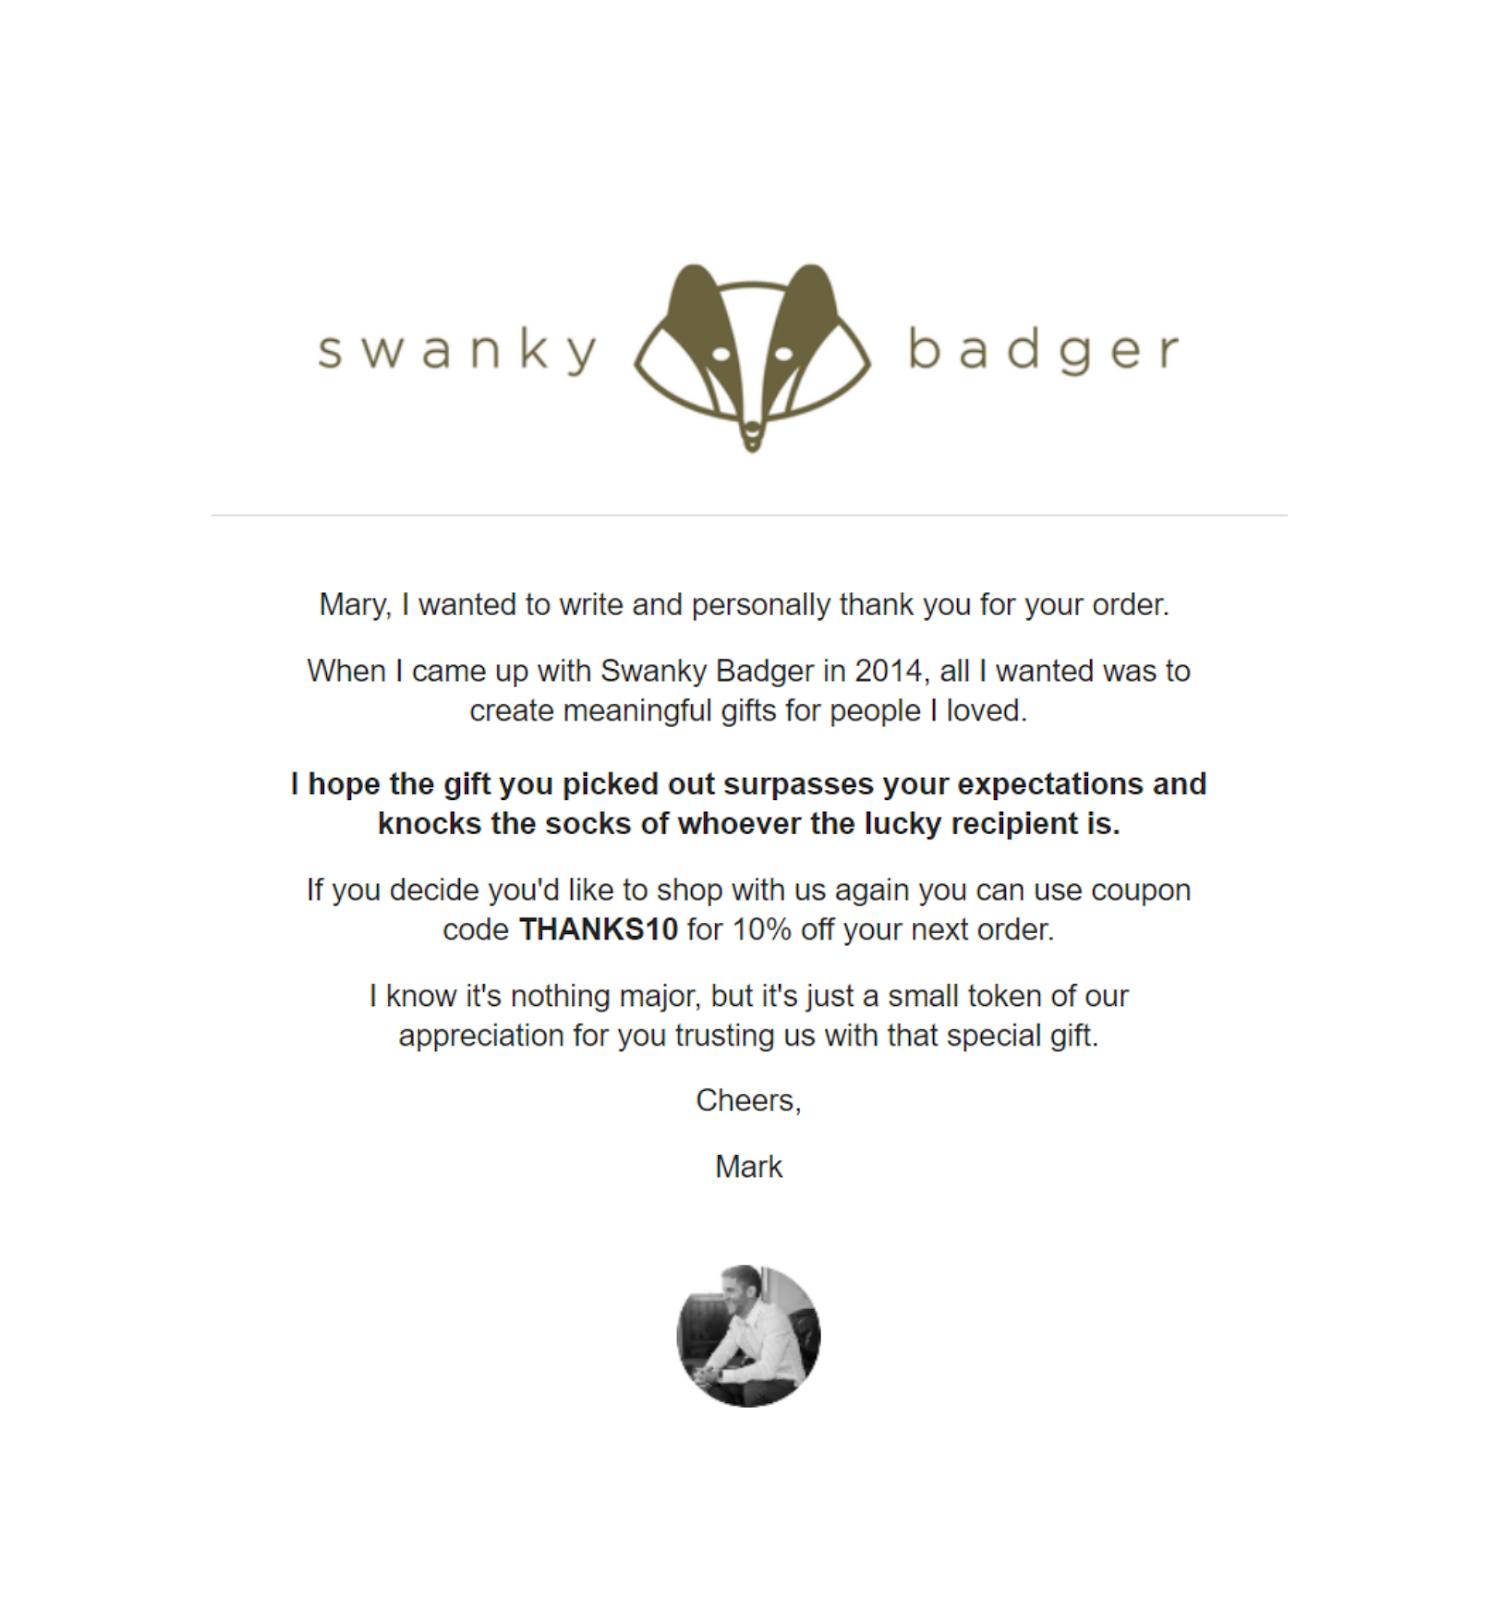 THE LIGHTLY PERSONALIZED THANK YOU CONFIRMATION EMAIL BY SWANKY BADGER